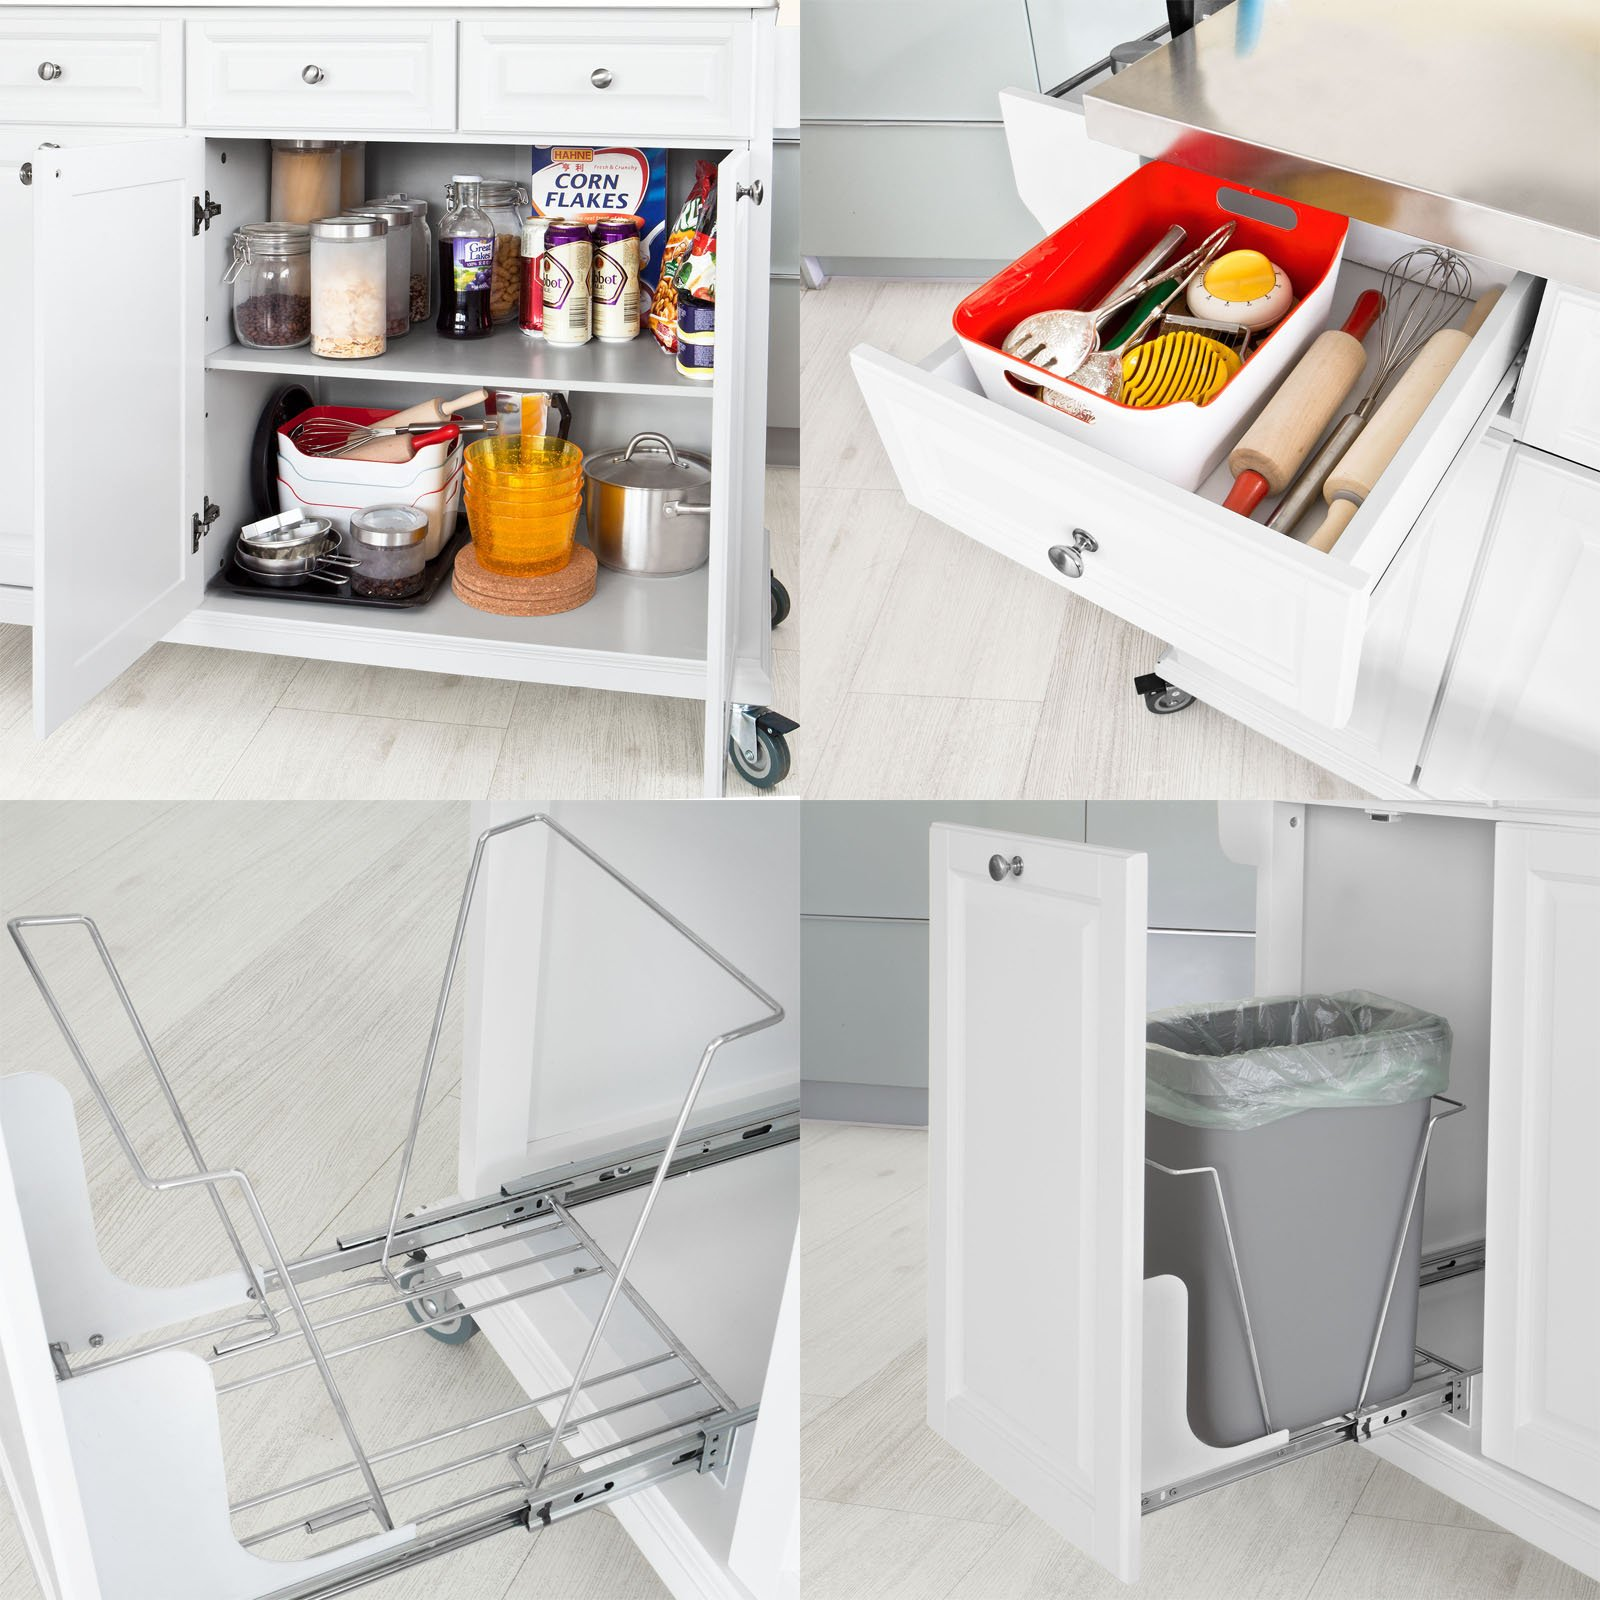 SoBuy?? White Luxury Kitchen Island Storage Trolley Cart, Kitchen Cabinet with Stainless Steel Worktop, FKW33-W by SoBuy by SoBuy (Image #7)